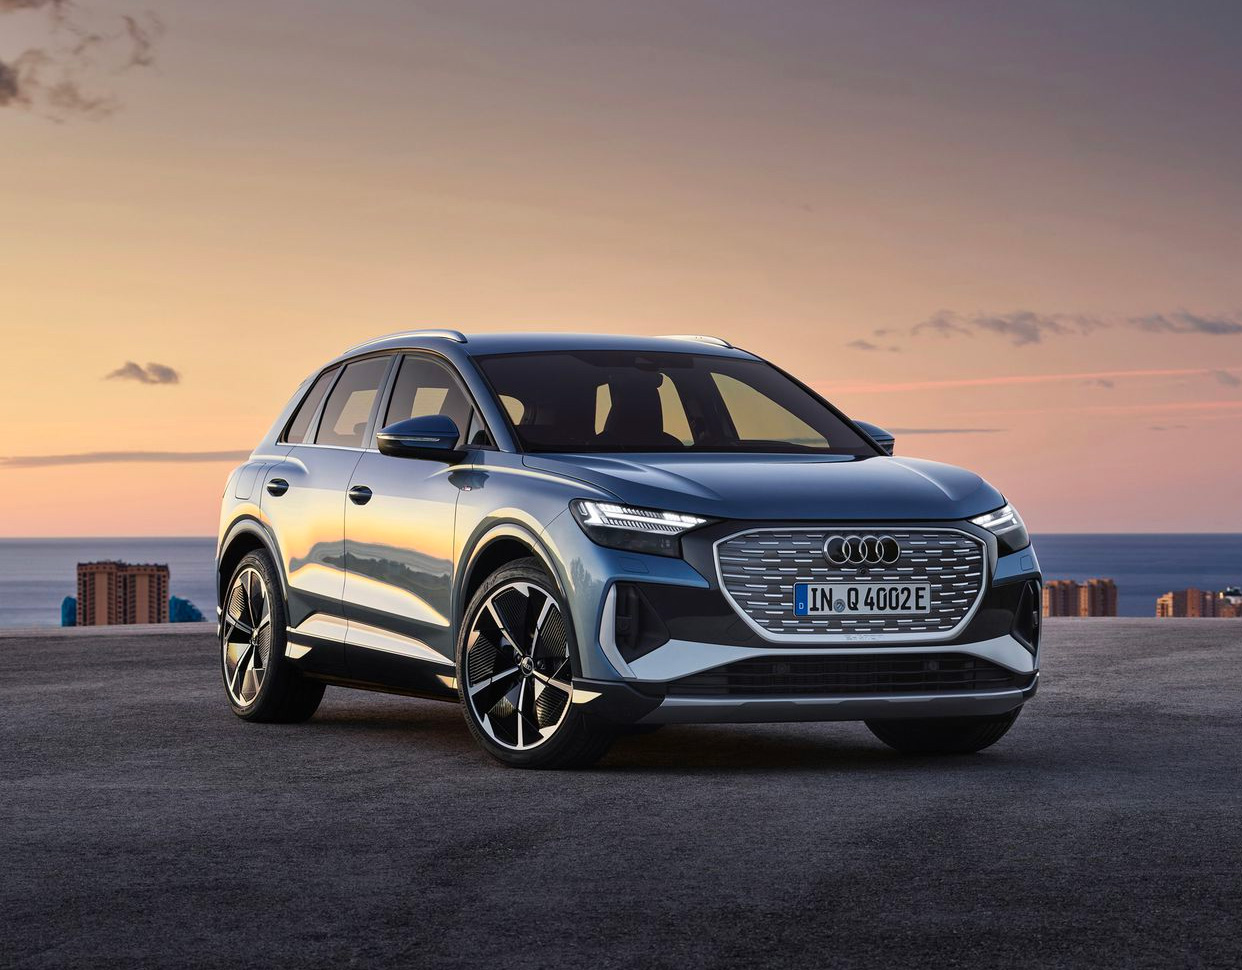 Audi's Q4 E-Tron is an All-Electric Compact Crossover at werd.com